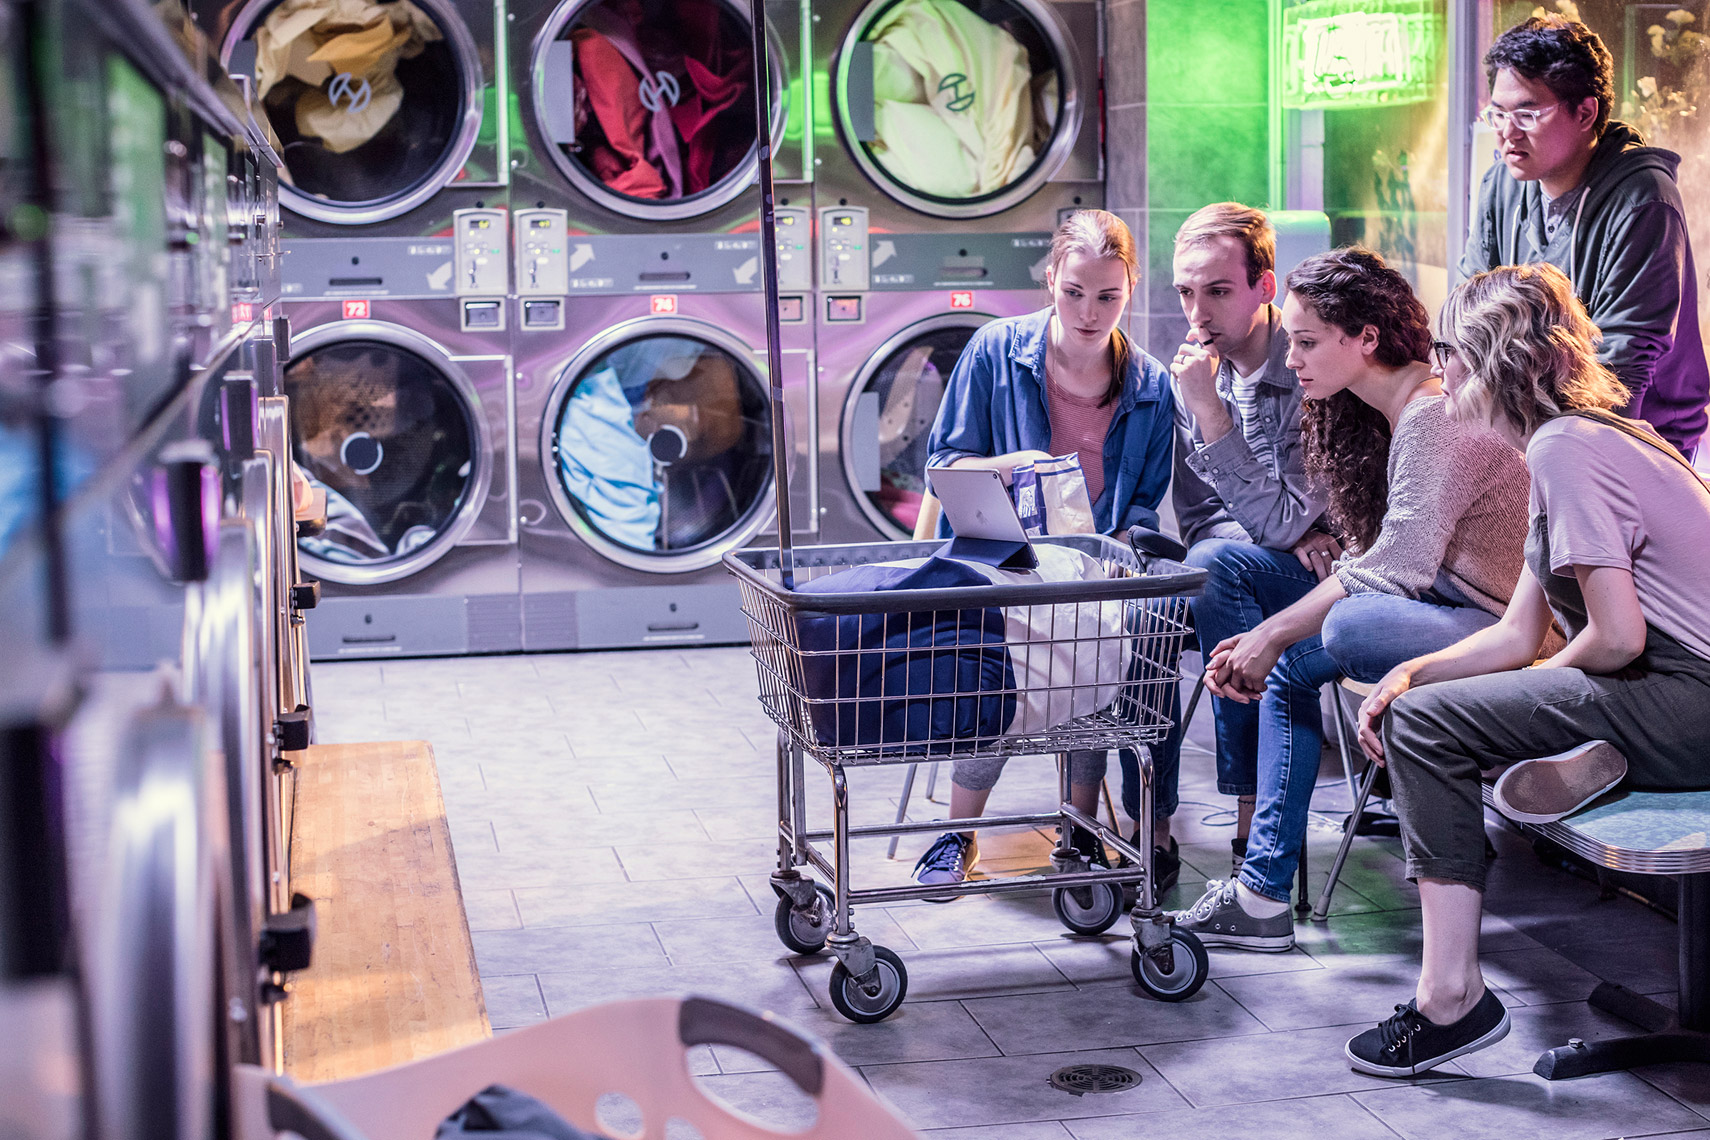 laundromat_bose_jussi_grznar-3532